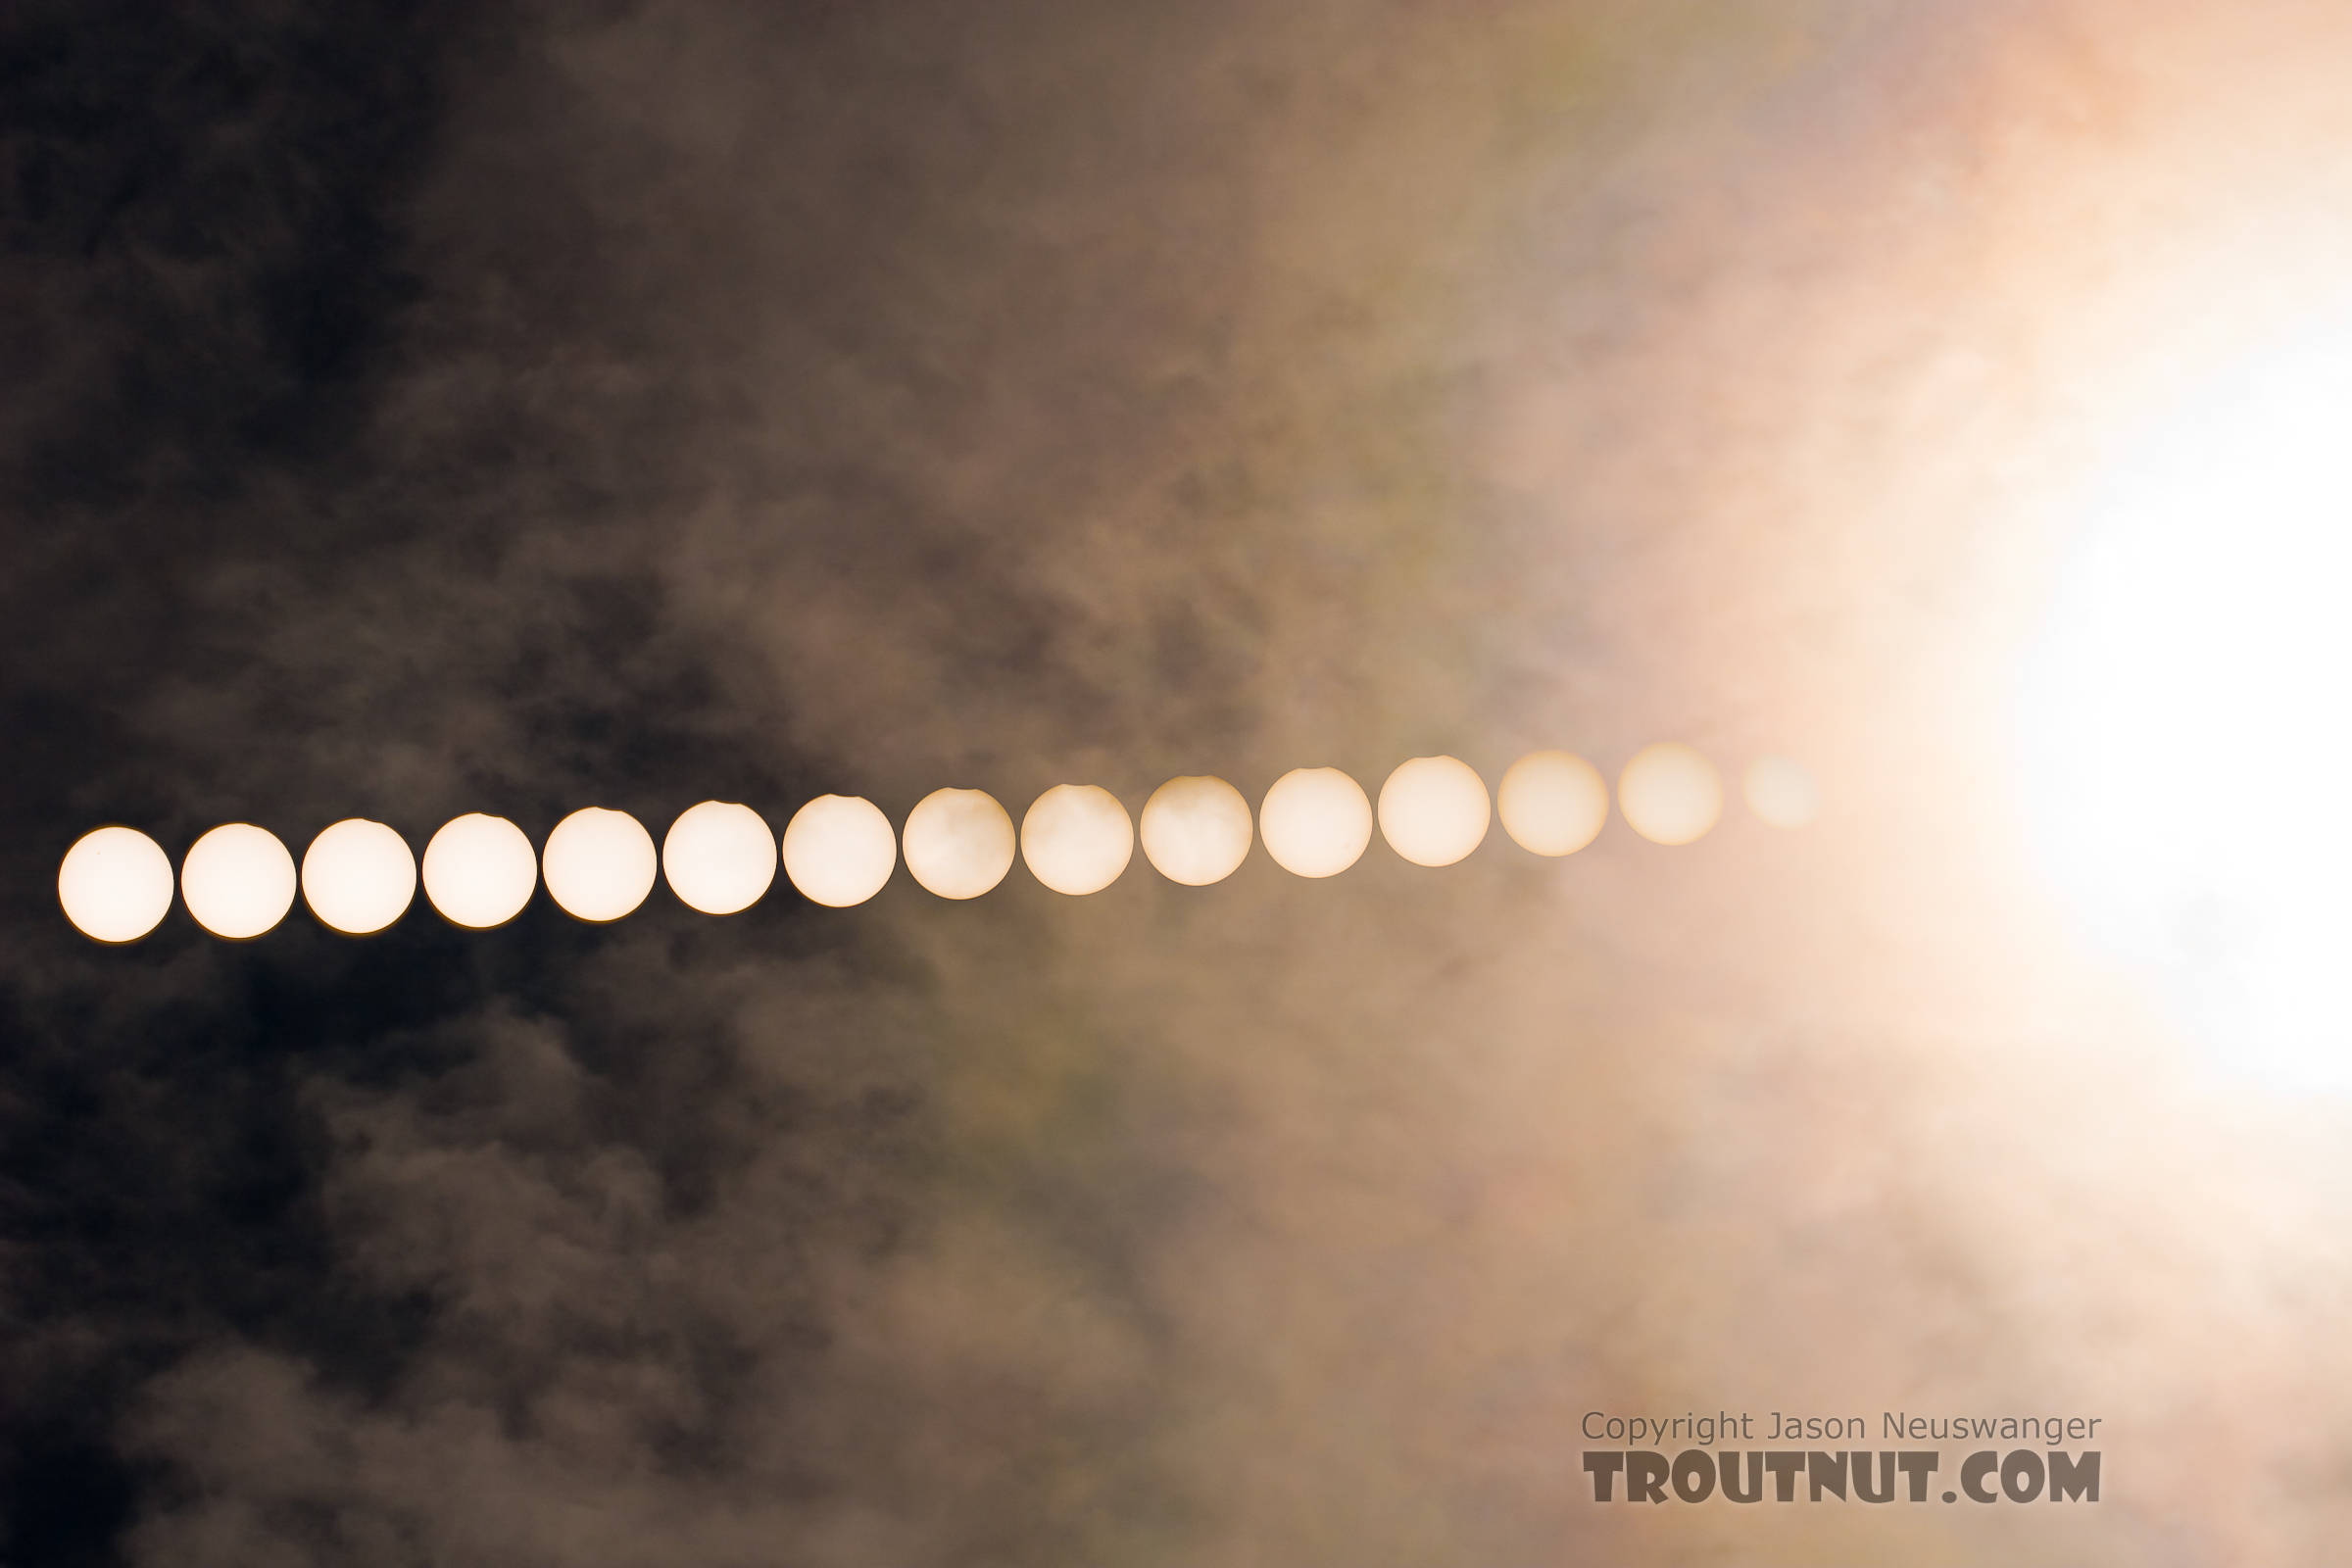 This partial solar eclipse today was most prominent across parts of Siberia, the Arctic Ocean, and Scandanavia, but I caught the outer edge of it here in Fairbanks, Alaska.  I went out to a quiet spot next to the Tanana River behind the airport, and shot this composite photo of several short exposures of the sun during the eclipse, and one longer exposure at the end, capturing the thin clouds that crept into the frame. From the Tanana River in Alaska.